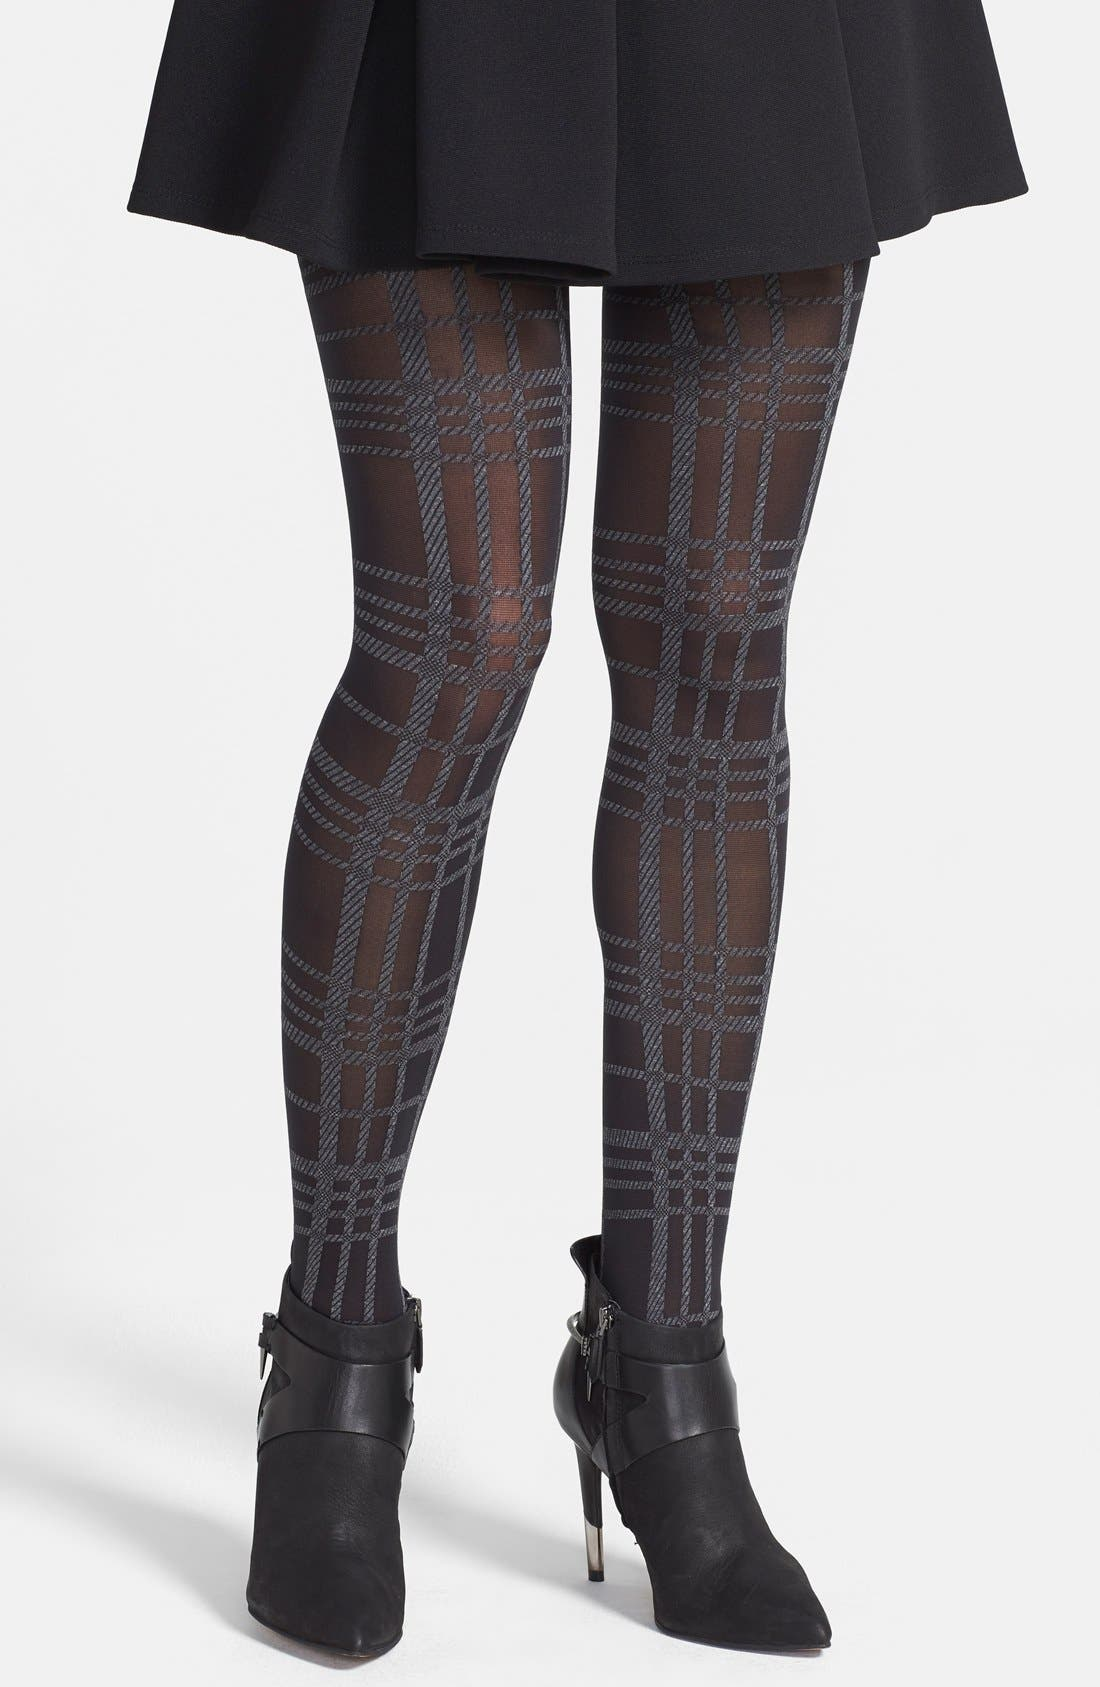 Alternate Image 1 Selected - Via Spiga 'Kensington' Plaid Tights